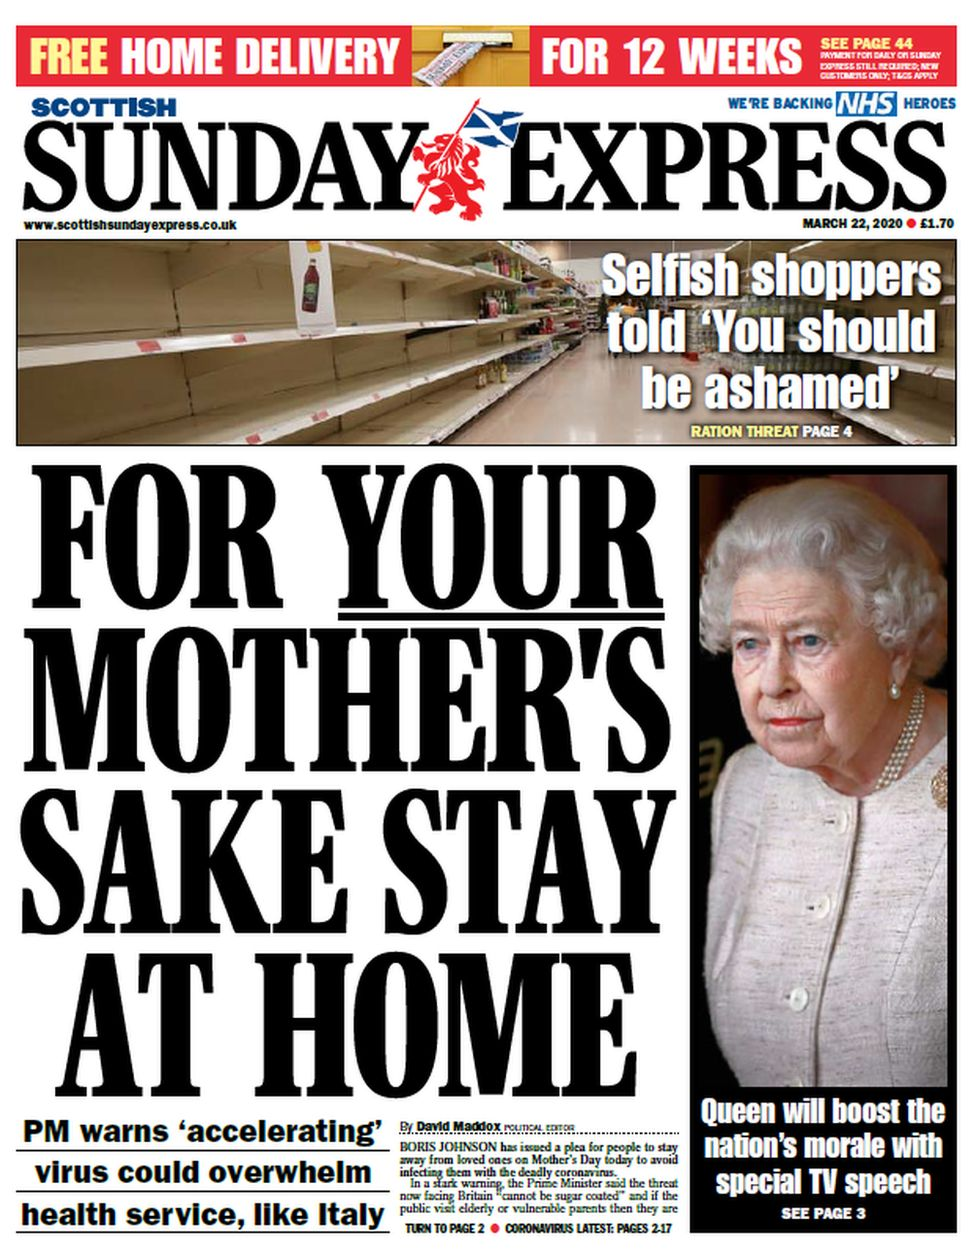 Scottish Sunday Express